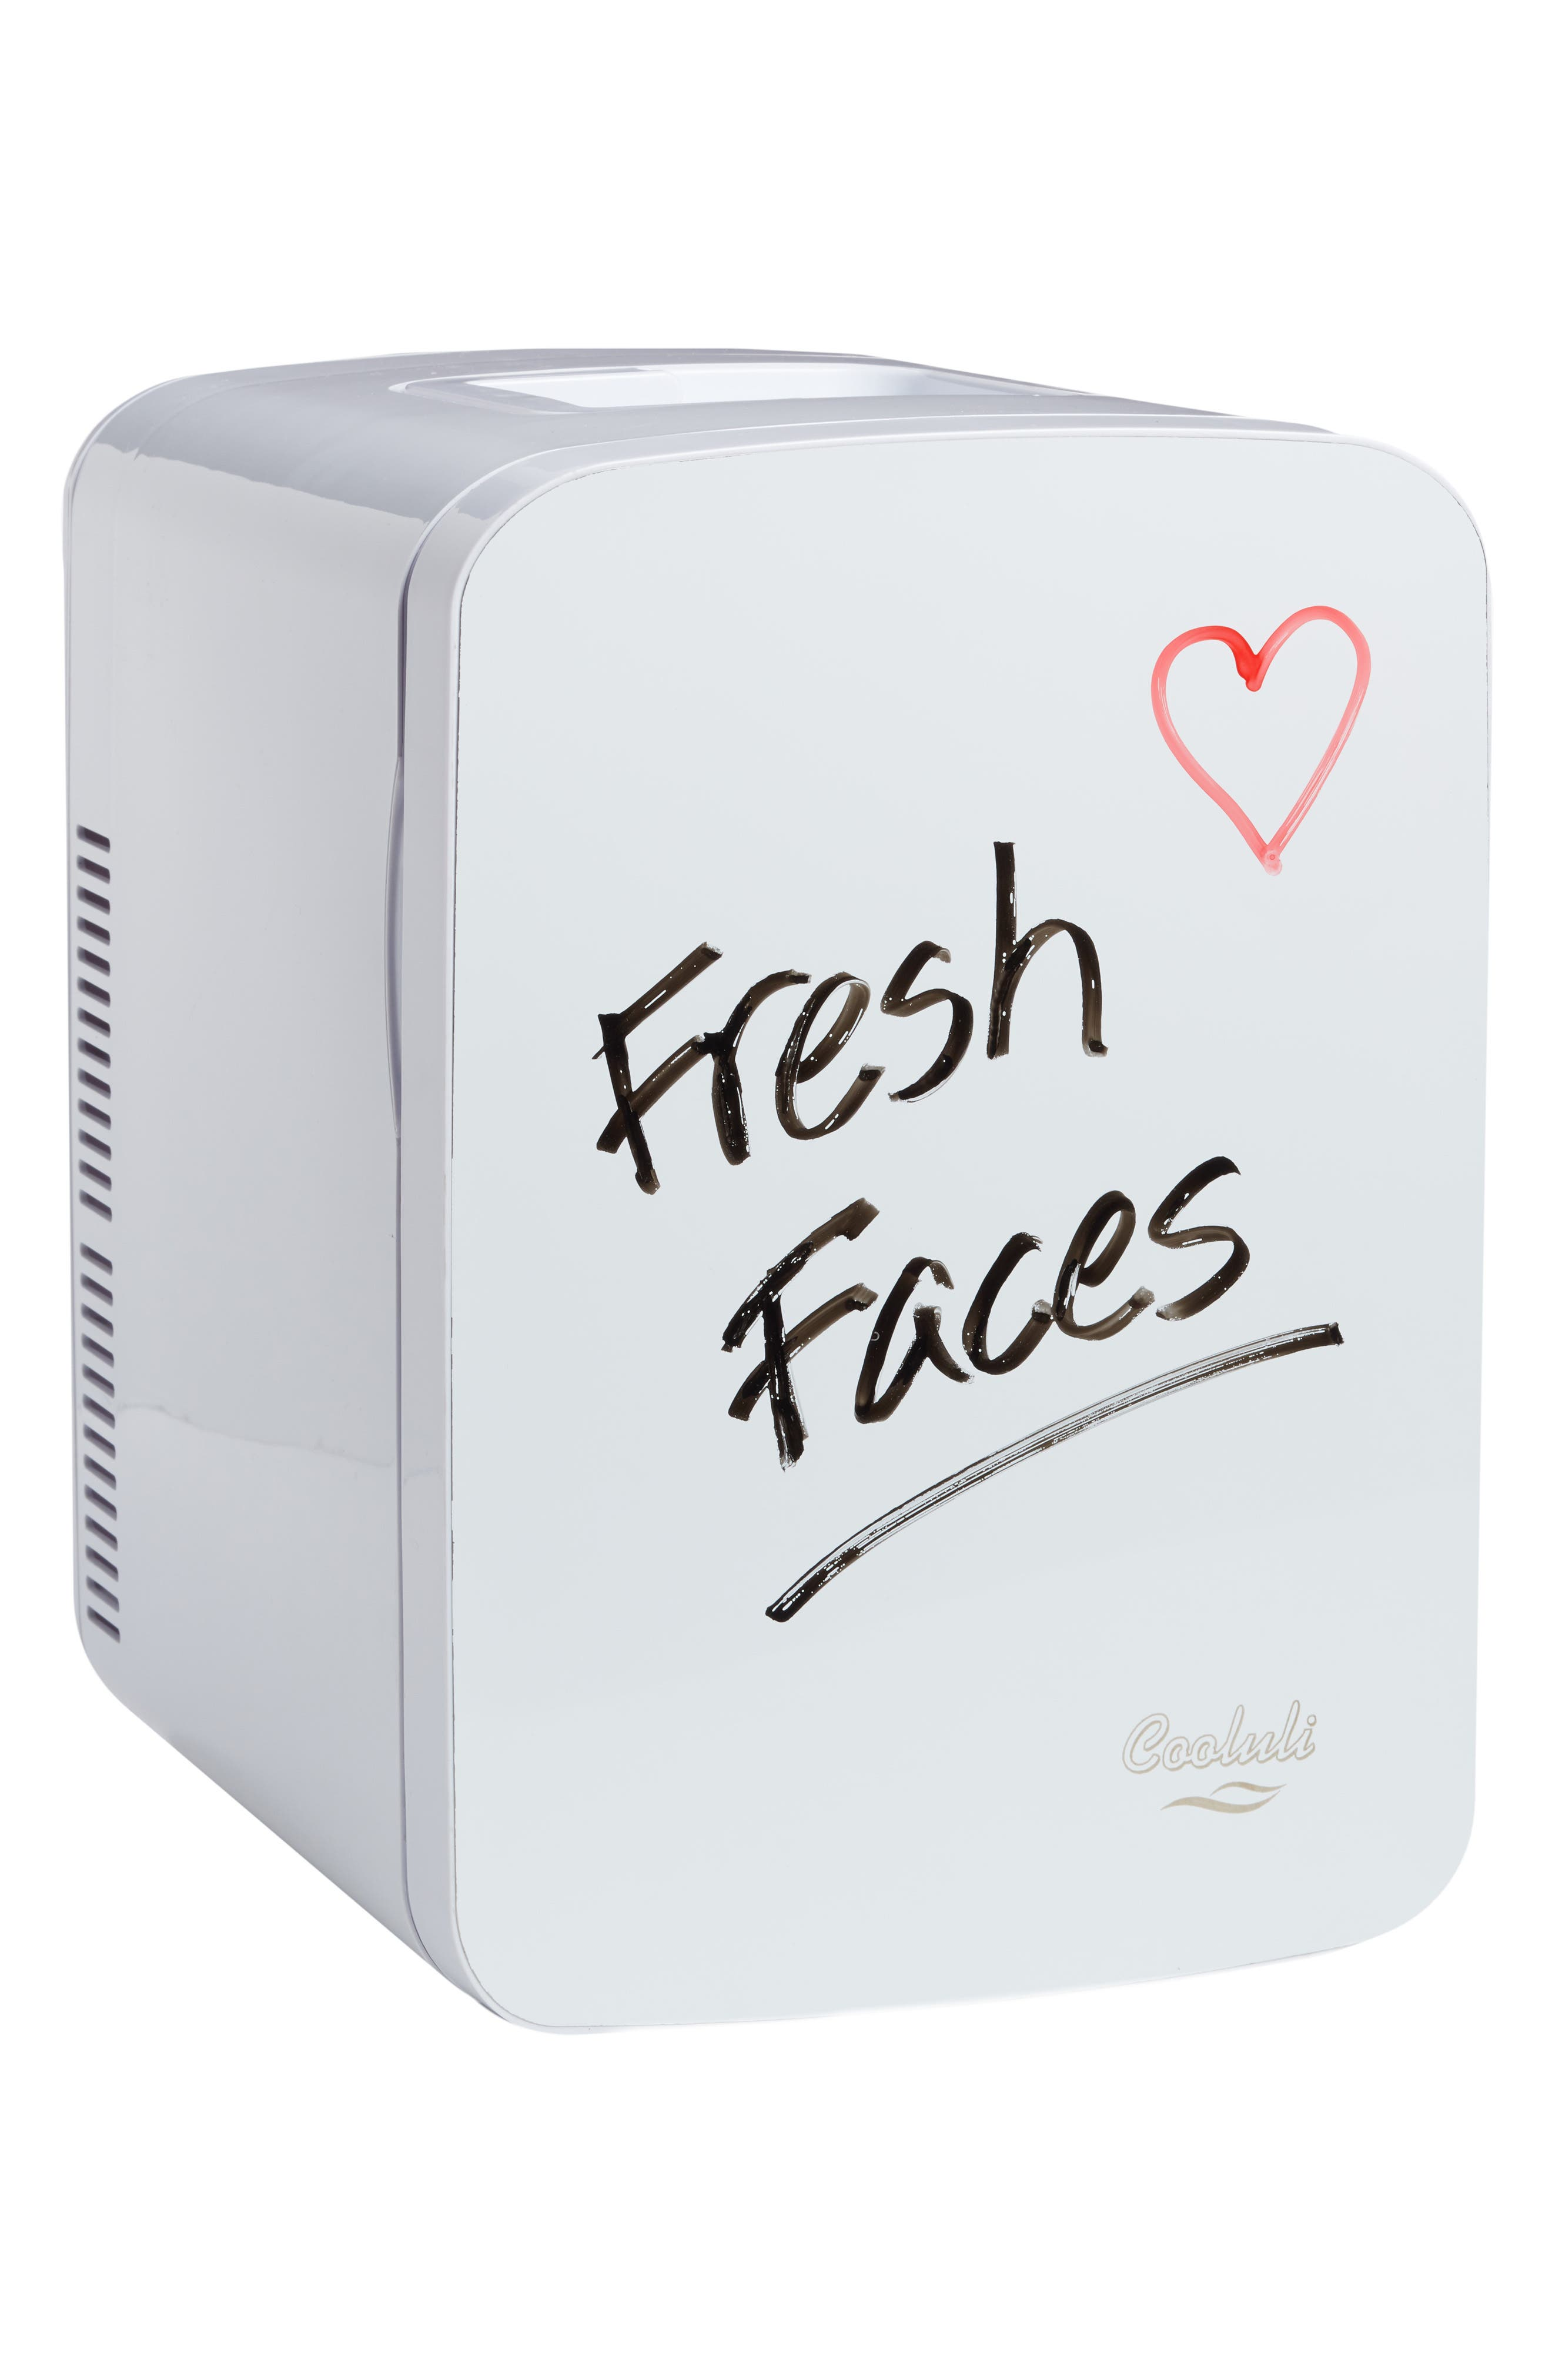 COOLULI The Vibe Whiteboard 15L Thermoelectric Mini Beauty Fridge & Warmer, Main, color, 100